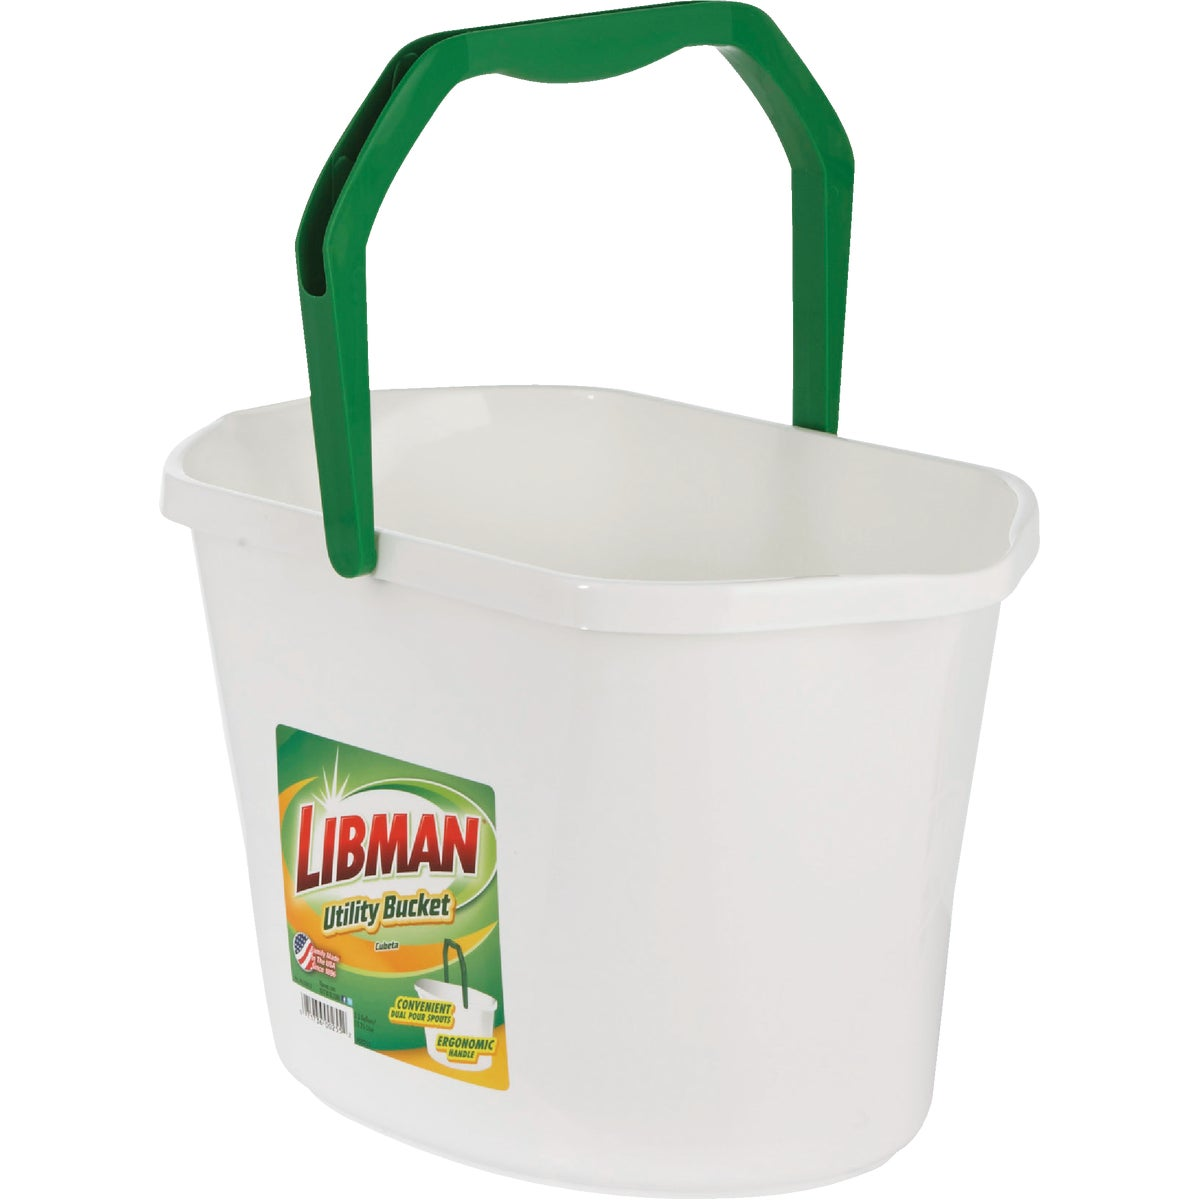 UTILITY BUCKET - 255 by The Libman Company